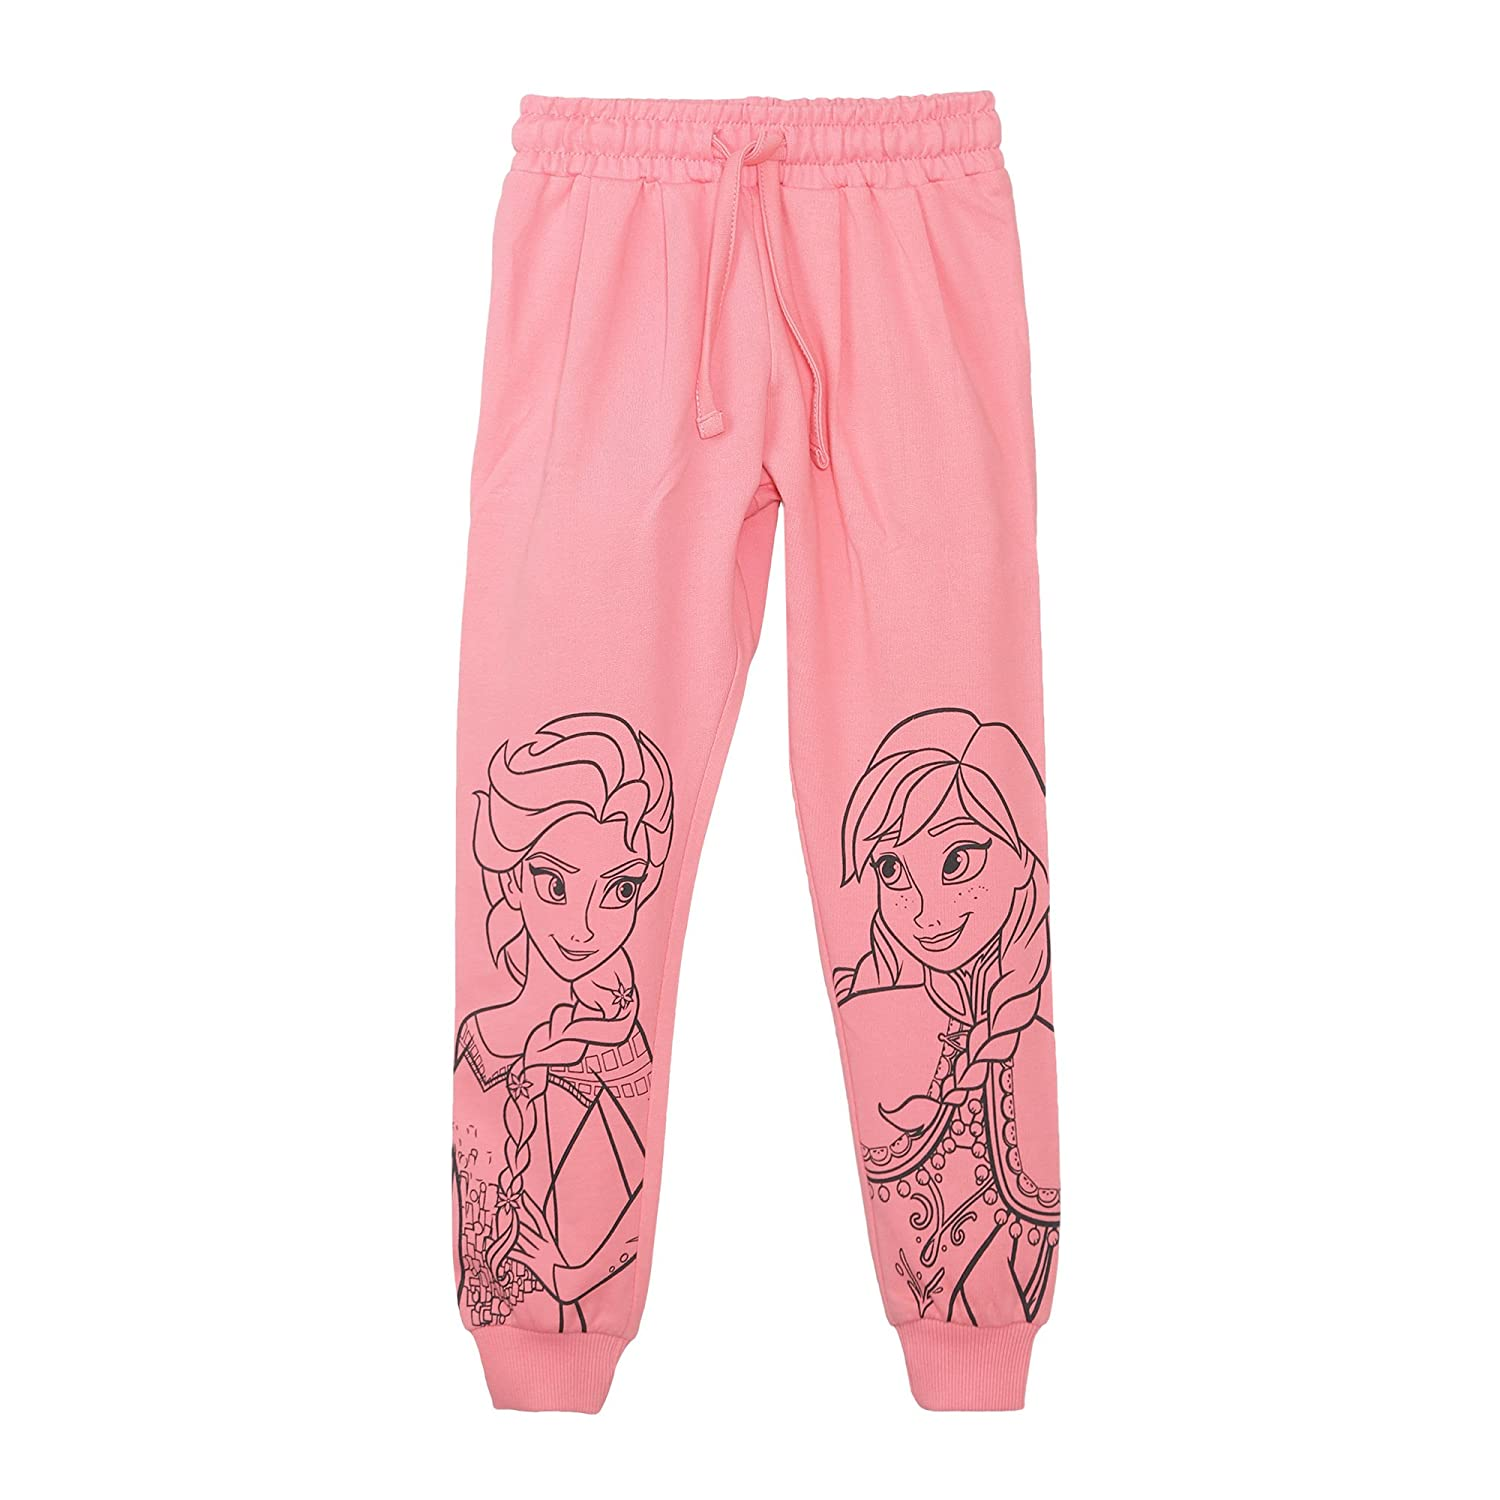 0ab8826e2 Disney Frozen Girls' Relaxed Regular Fit Cotton Trousers: Amazon.in:  Clothing & Accessories